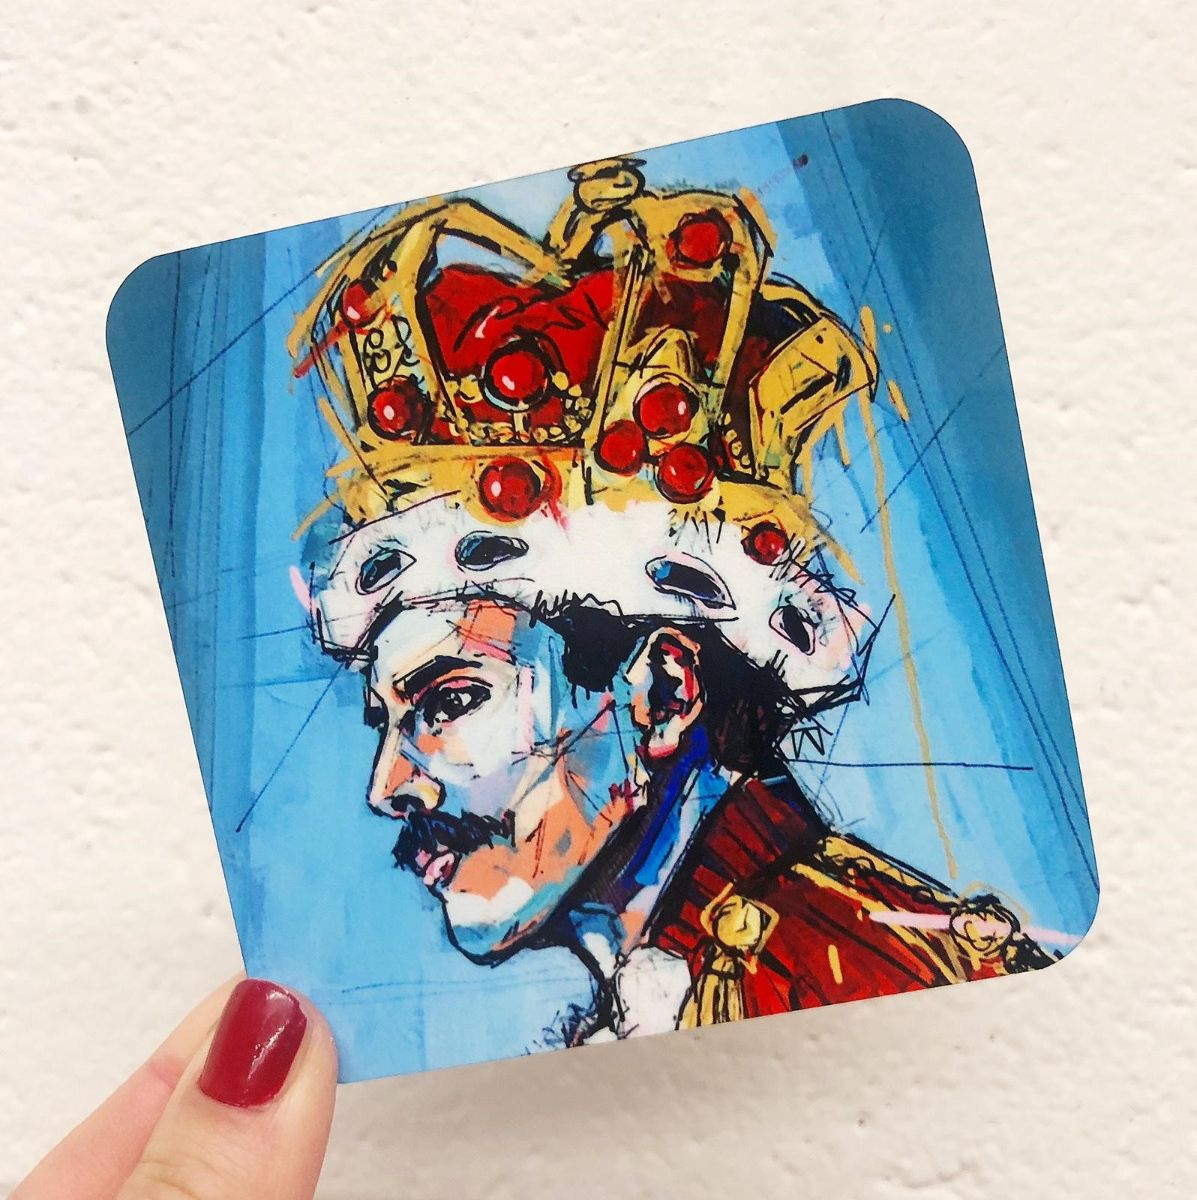 Personalised coasters with Freddie Mercury portrait, made in UK